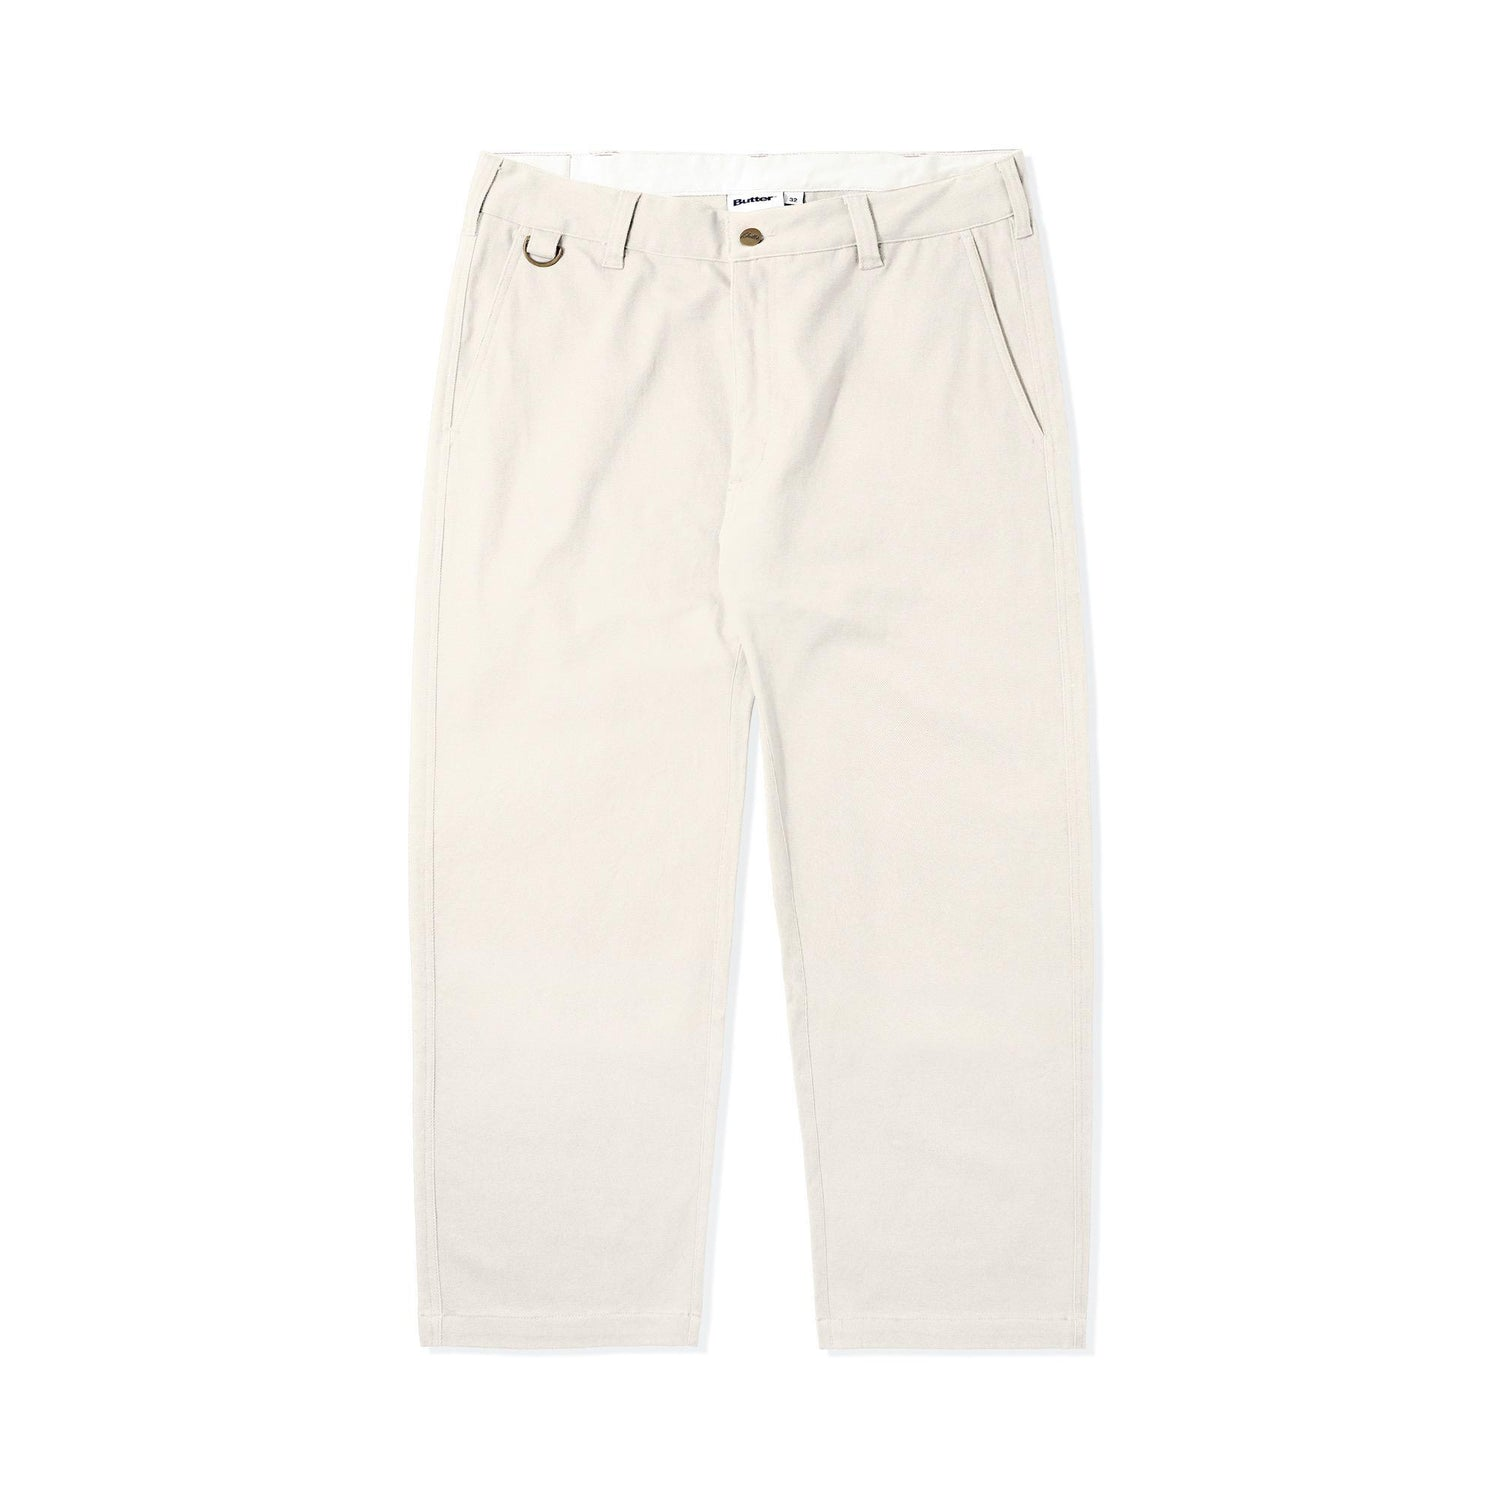 Marshall Pants, Bone